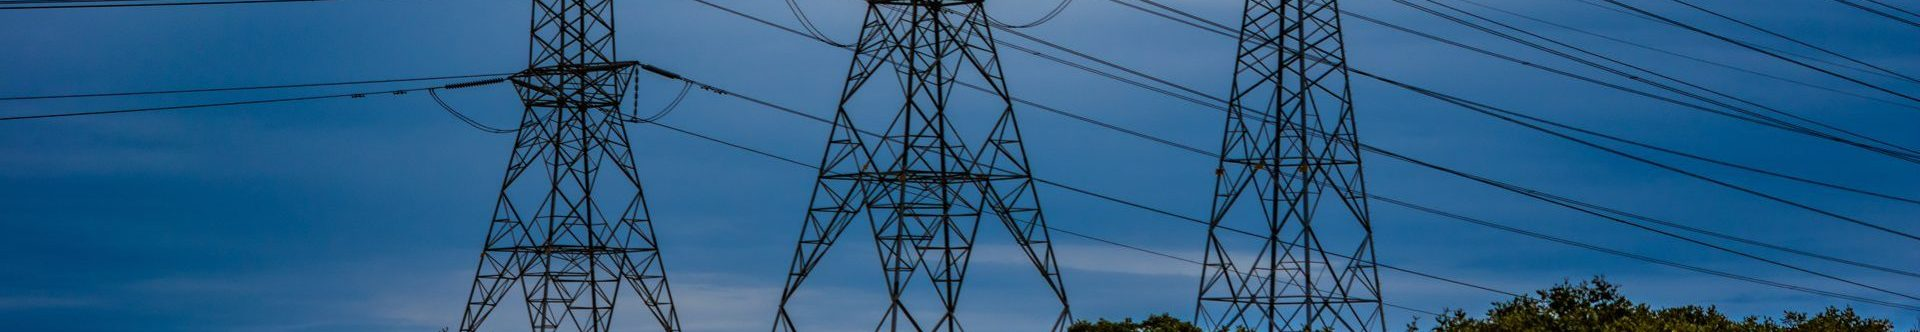 Electrical towers and power lines over trees and a blue sky